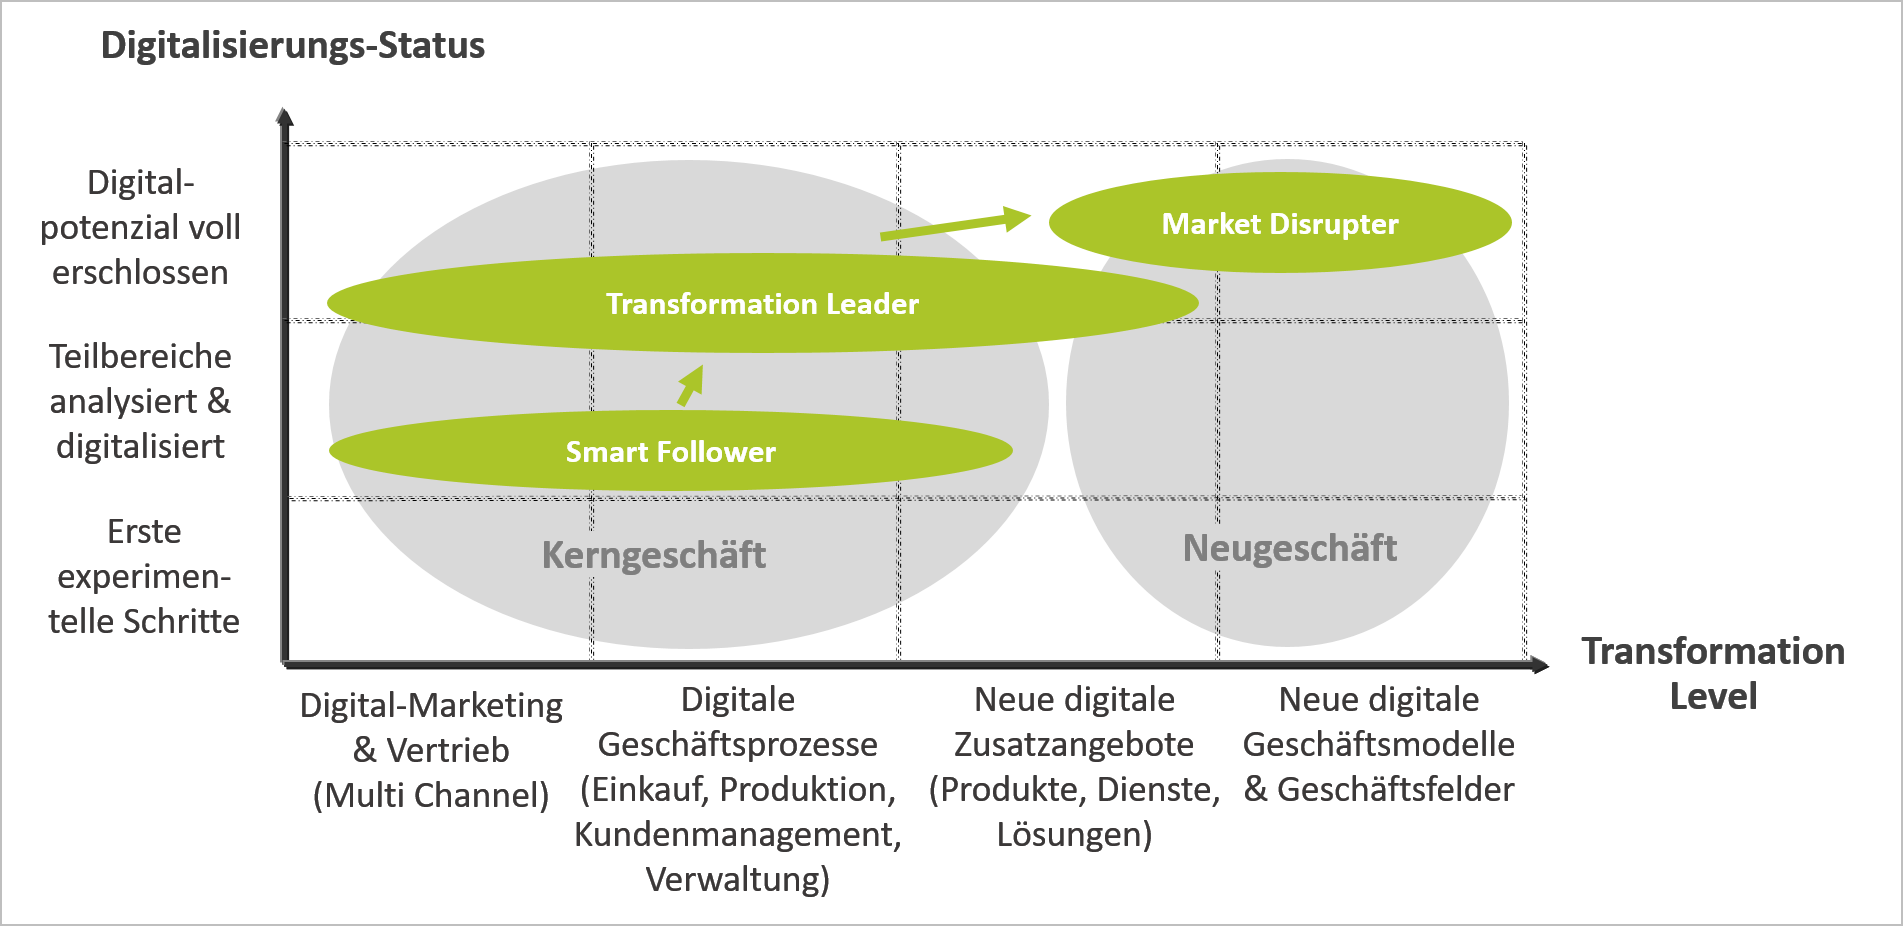 Strategie-Optionen für die Digitale Transformation (© 1stMOVER 2018)